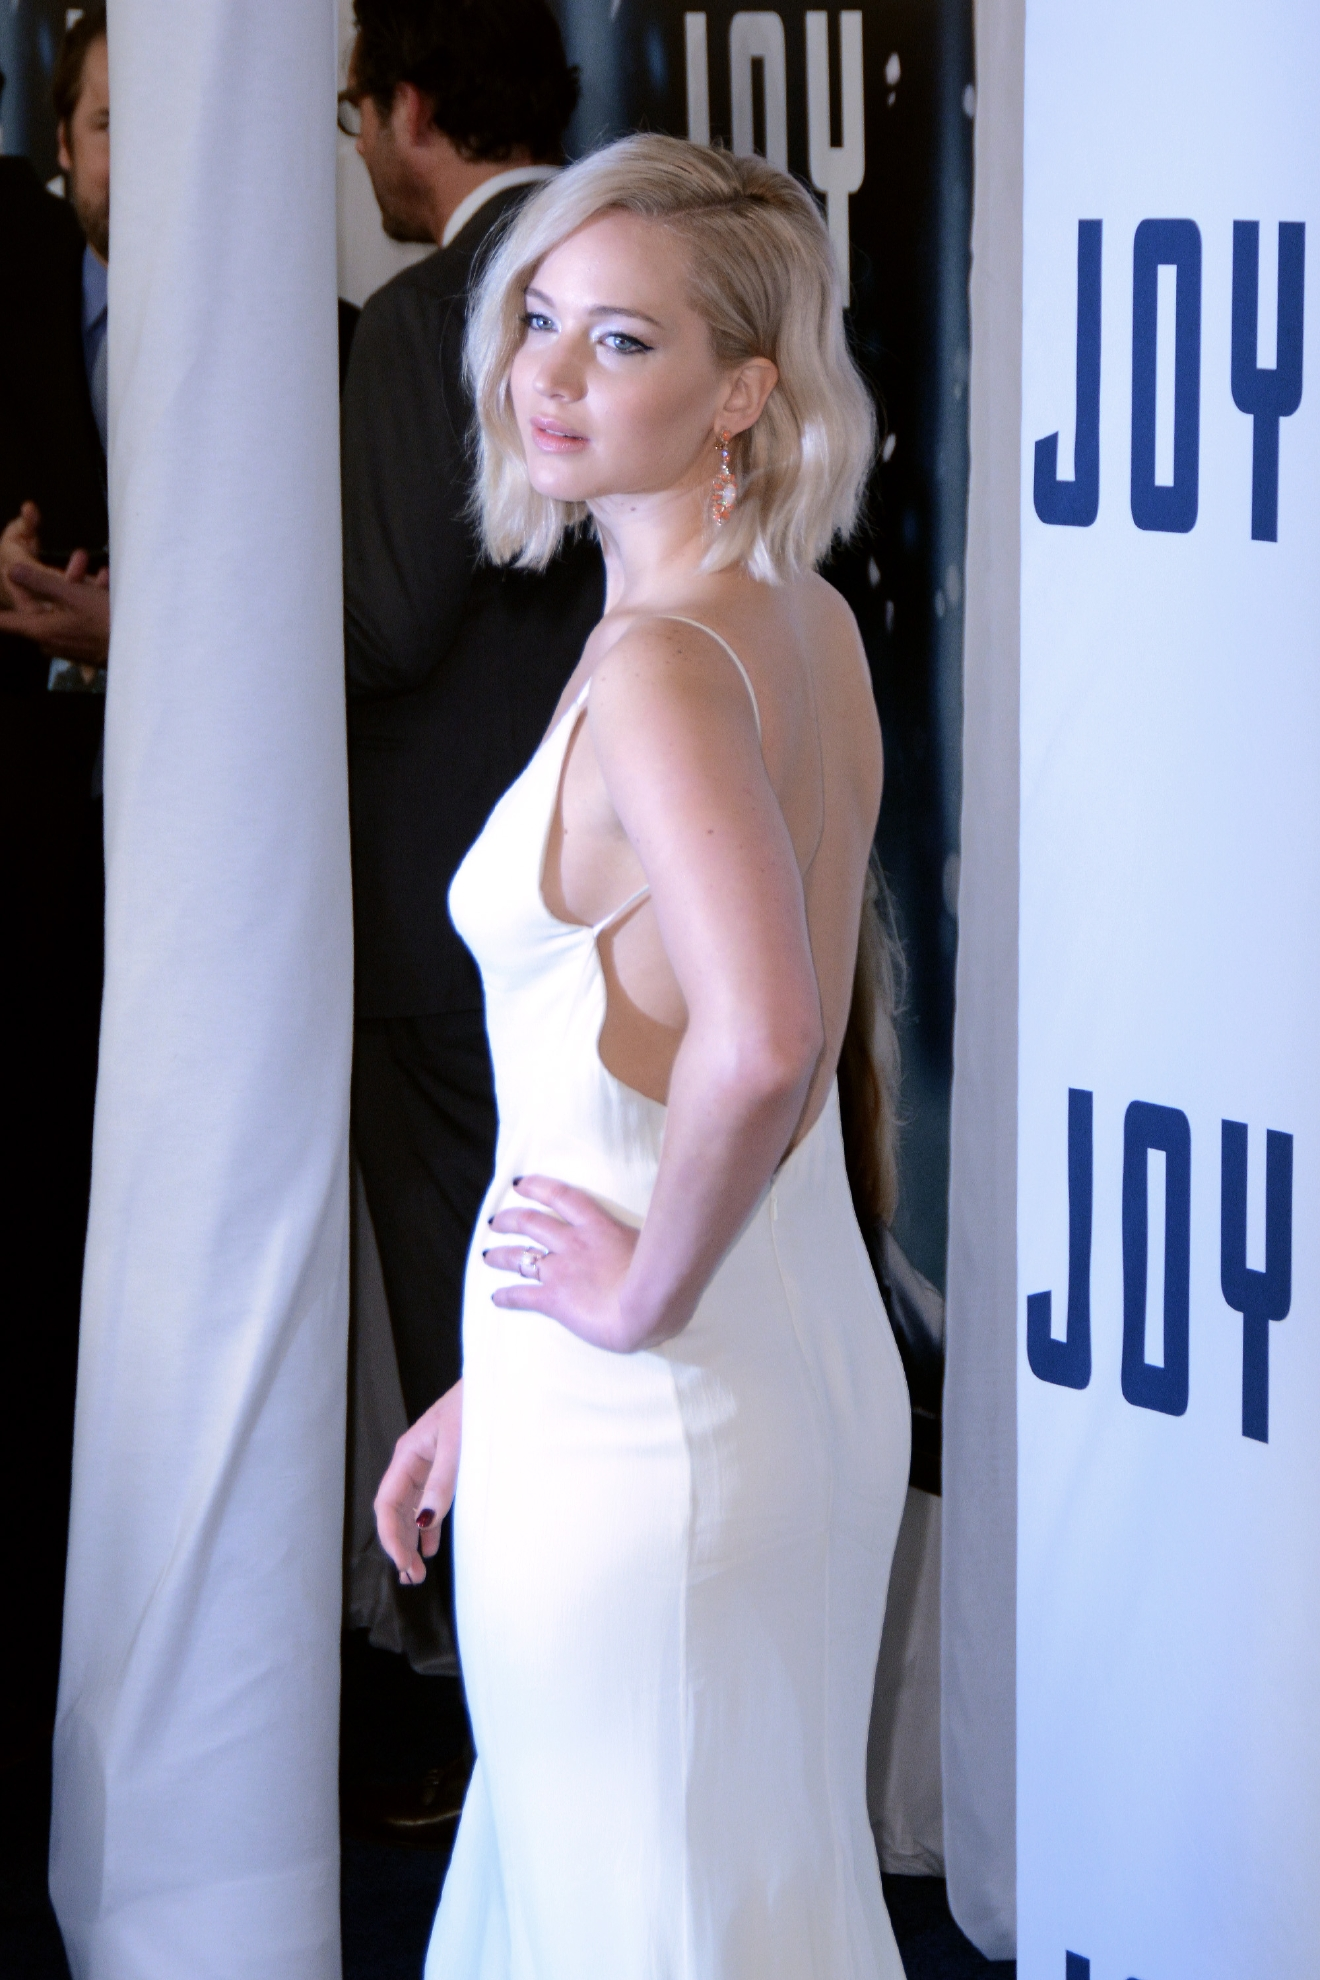 New York premiere of 'Joy'- Red Carpet Arrivals  Featuring: Jennifer Lawrence Where: New York, New York, United States When: 13 Dec 2015 Credit: Ivan Nikolov/WENN.com